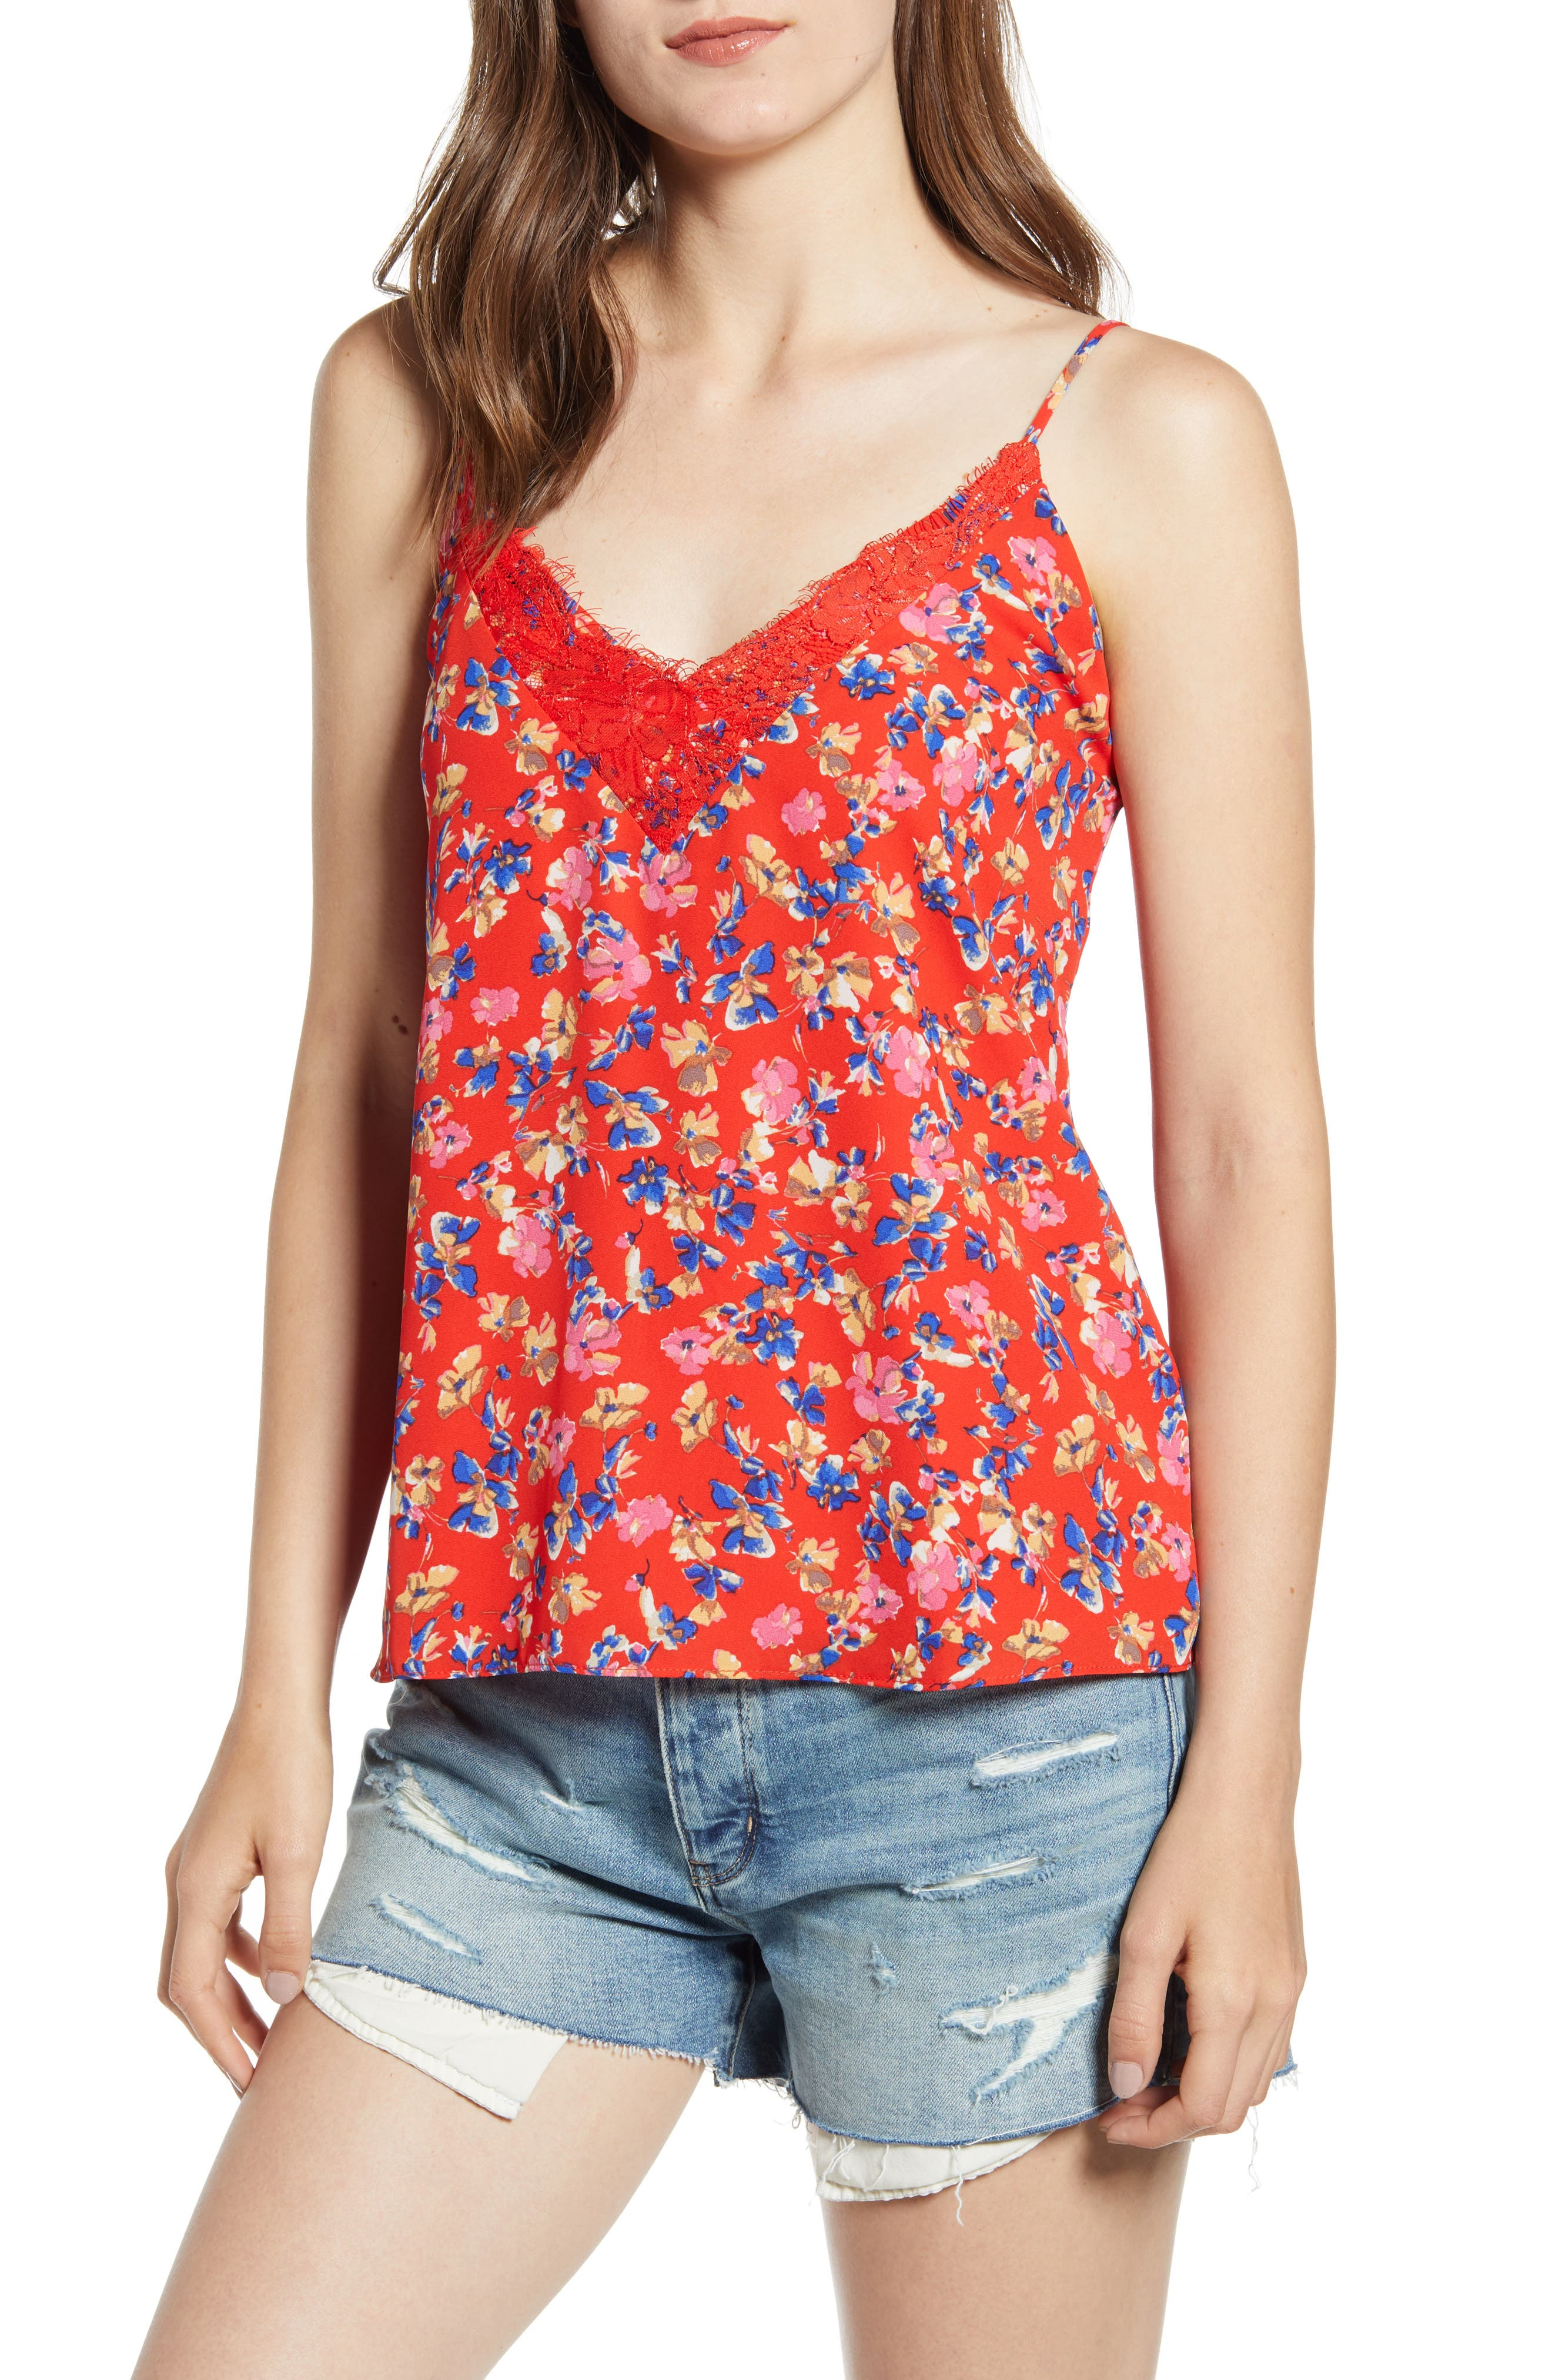 Socialite Lace Trim Camisole Top, Red